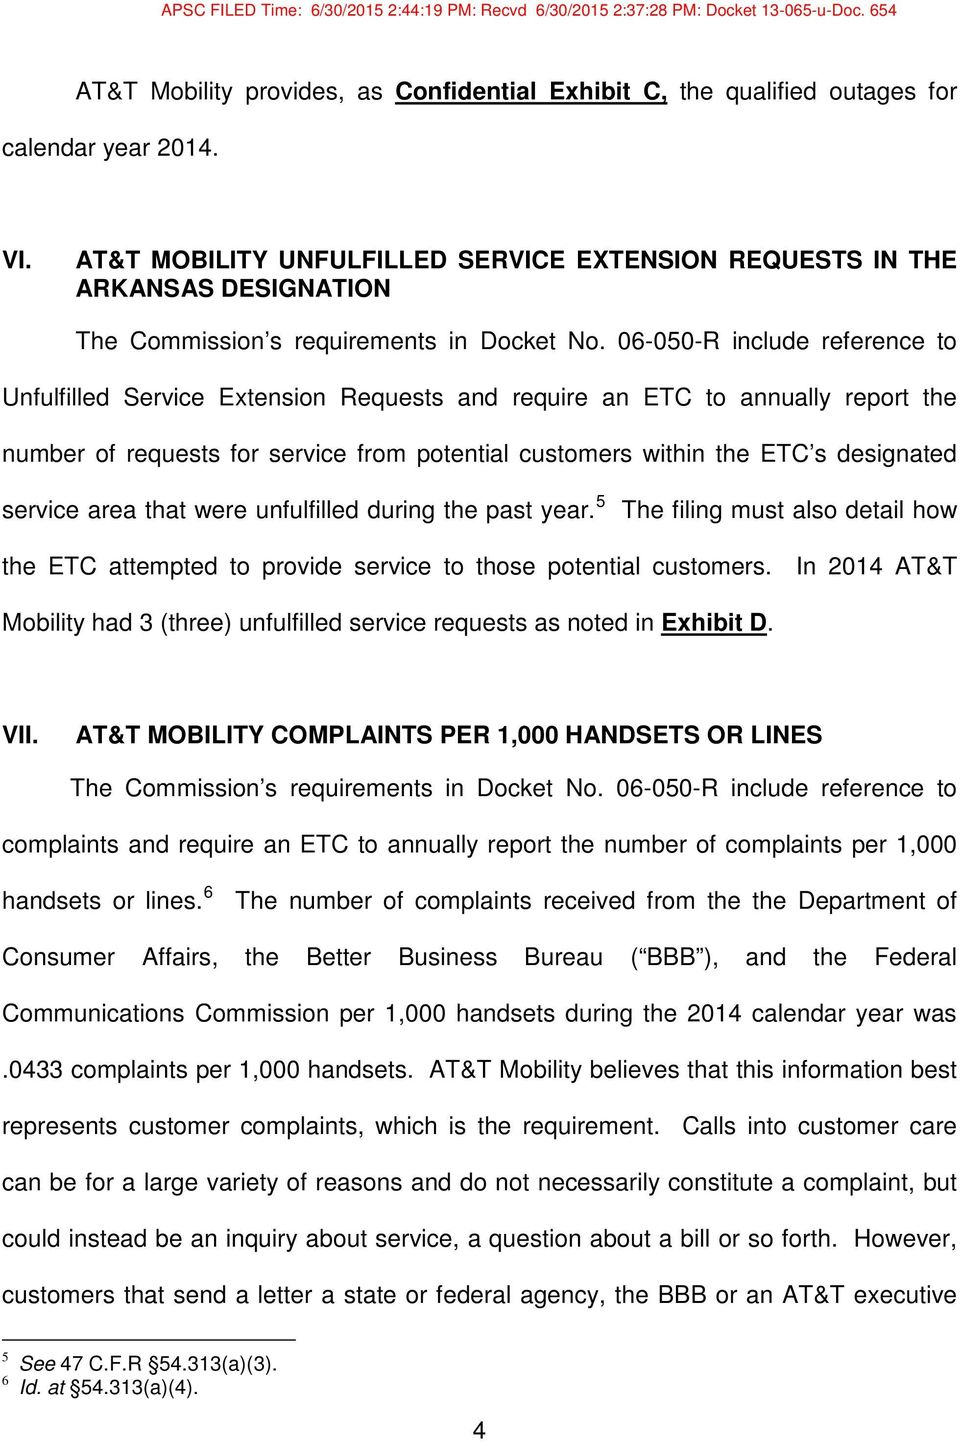 06-050-R include reference to Unfulfilled Service Extension Requests and require an ETC to annually report the number of requests for service from potential customers within the ETC s designated